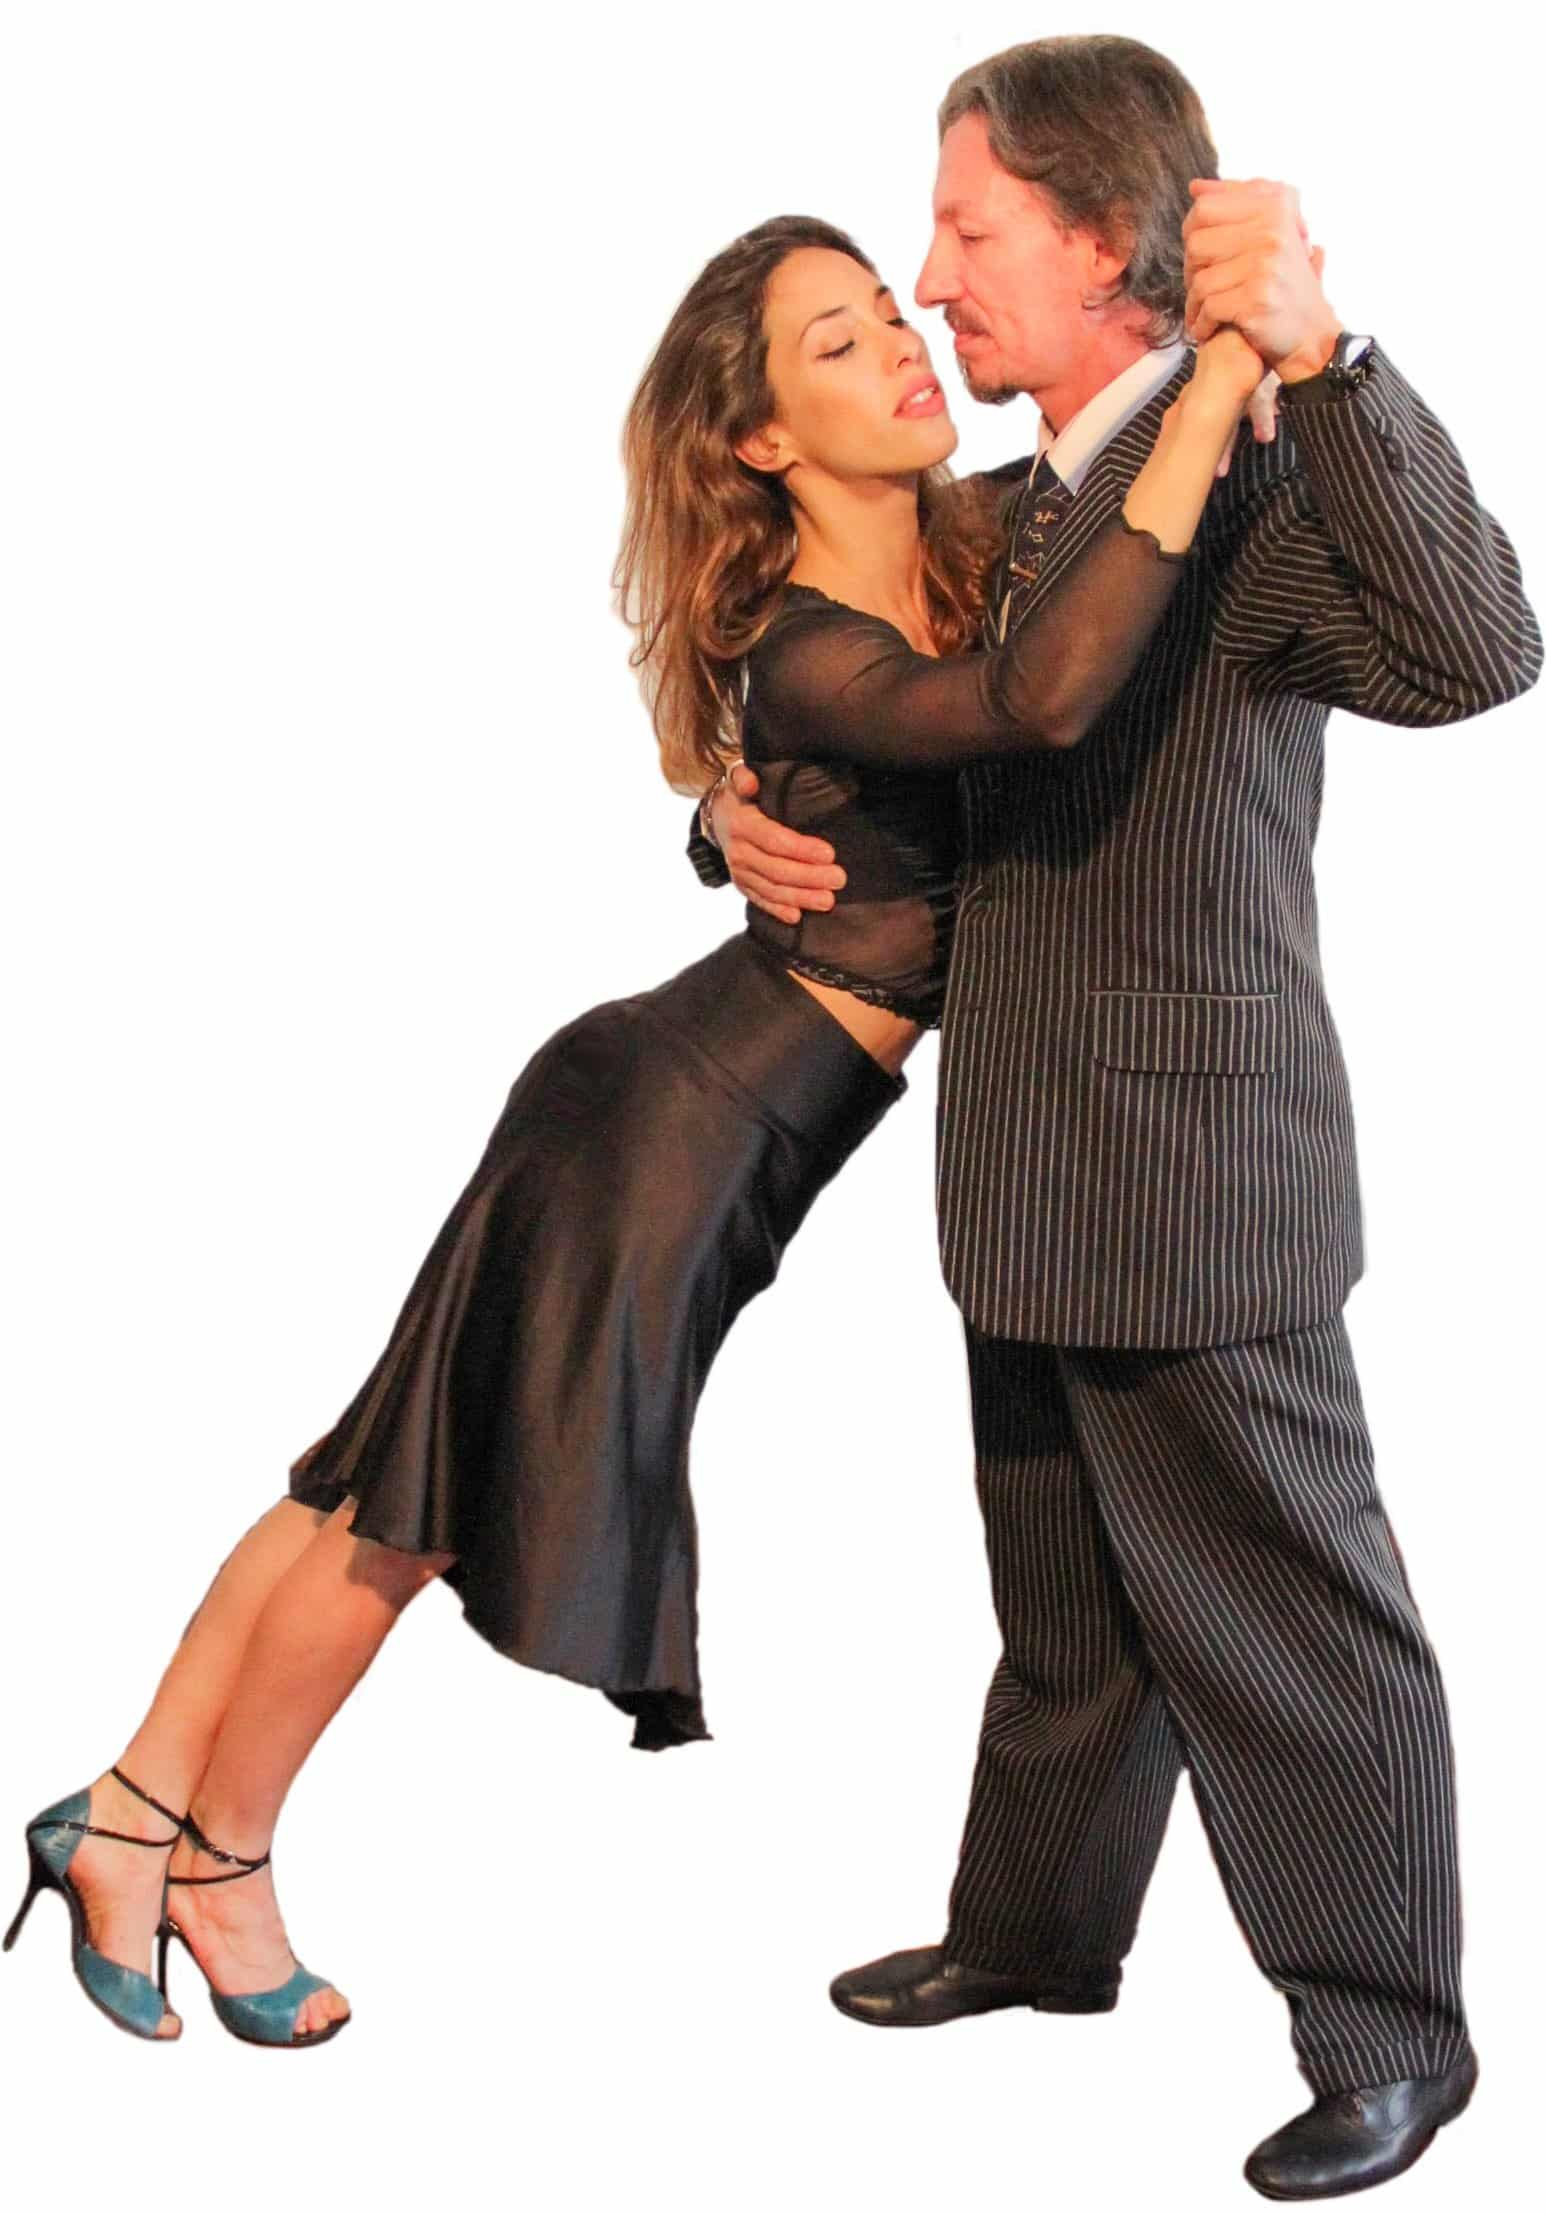 Marcelo-Solis-Argentine Tango dance classes for beginners, intermediate and advanced level. Argentine Tango dance Private lessons. one to one Argentine dance lessons. Argentine Tango dance lessons for couples. Argentine Tango Milongas and workshops.